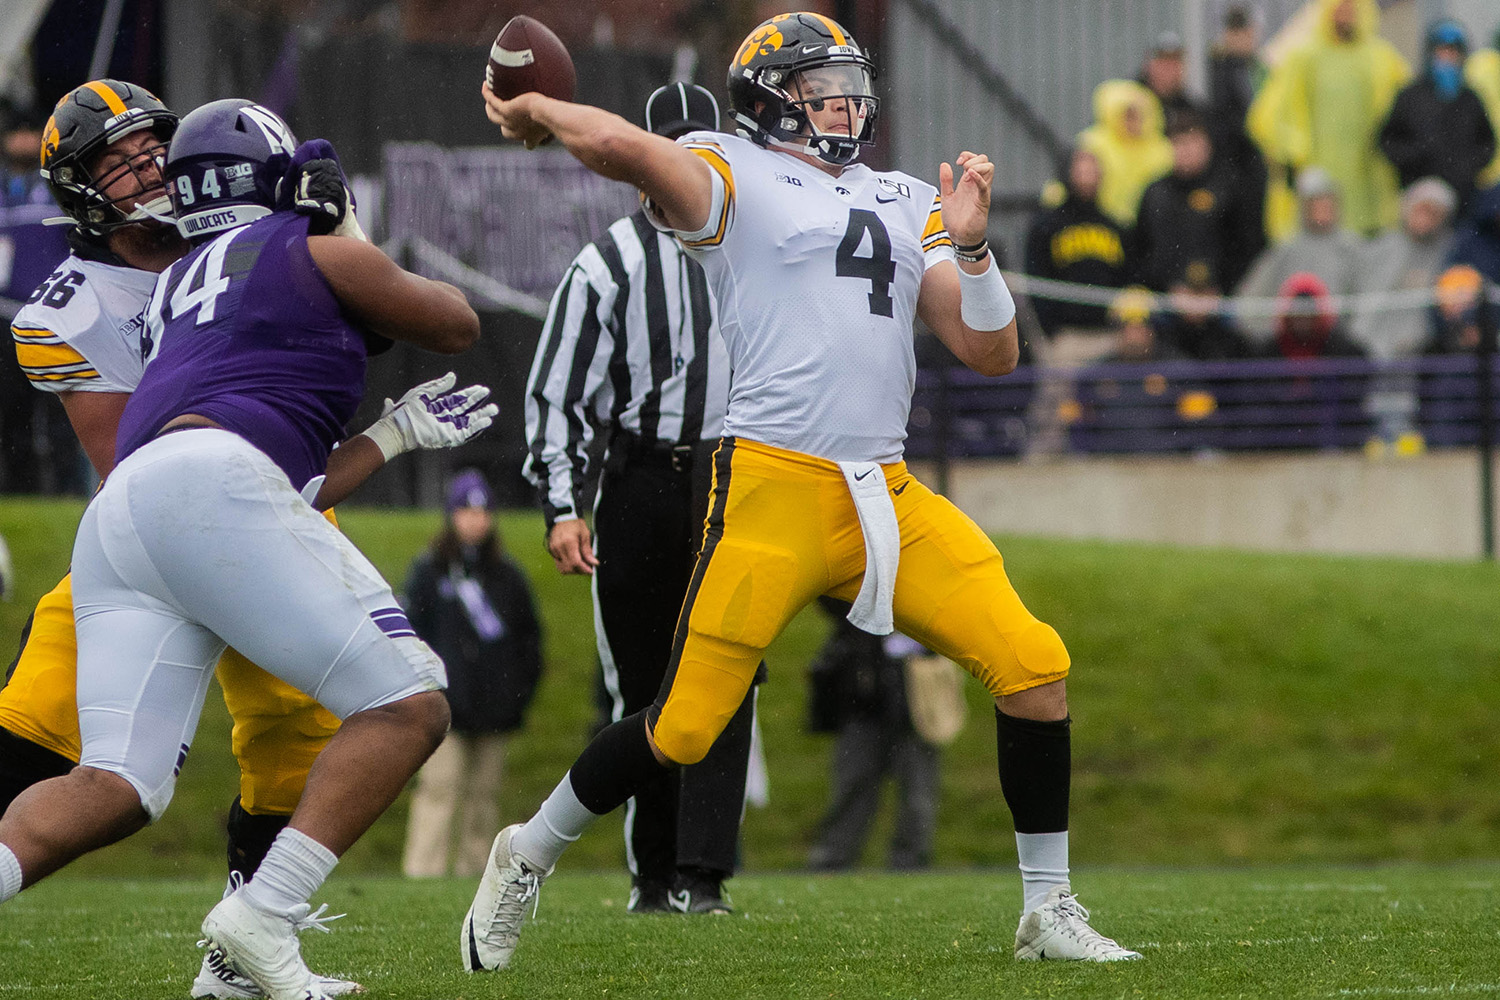 Iowa quarterback Nate Stanley passes the ball during a game against Northwestern at Ryan Field on Saturday, October 26, 2019. The Hawkeyes defeated the Wildcats 20-0. Stanley passed for a total of 179 yards.